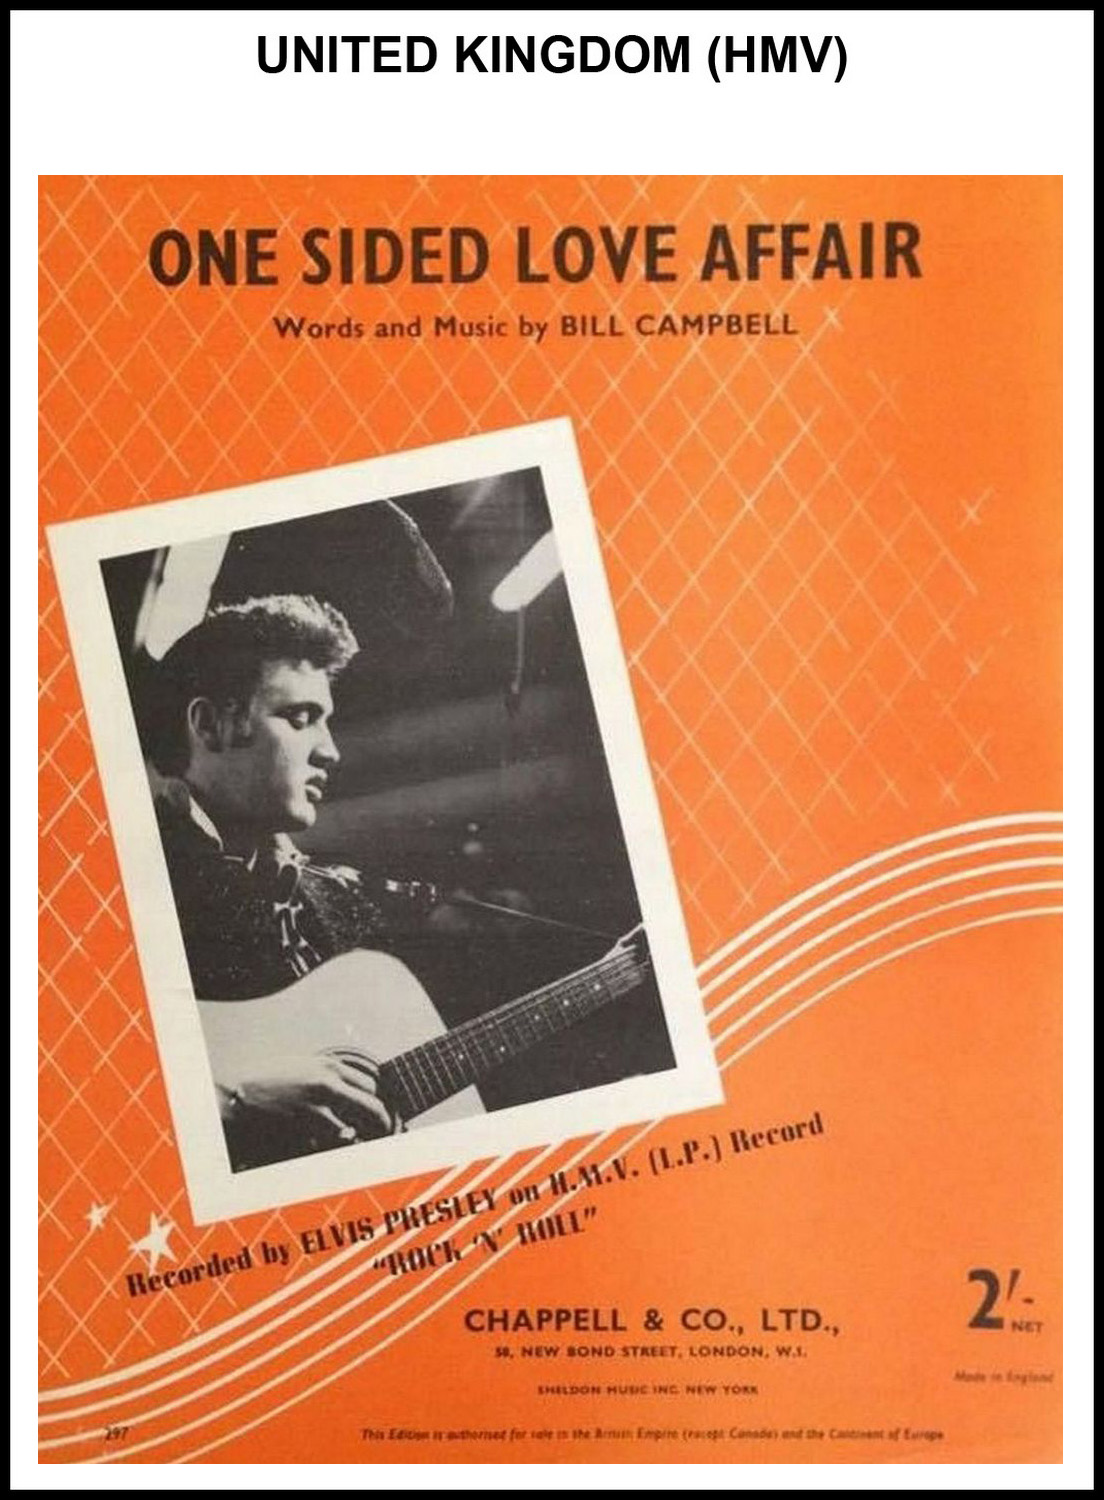 1956 - One Sided Love Affair (UK, HMV) (CHRIS GILES COLLECTION)